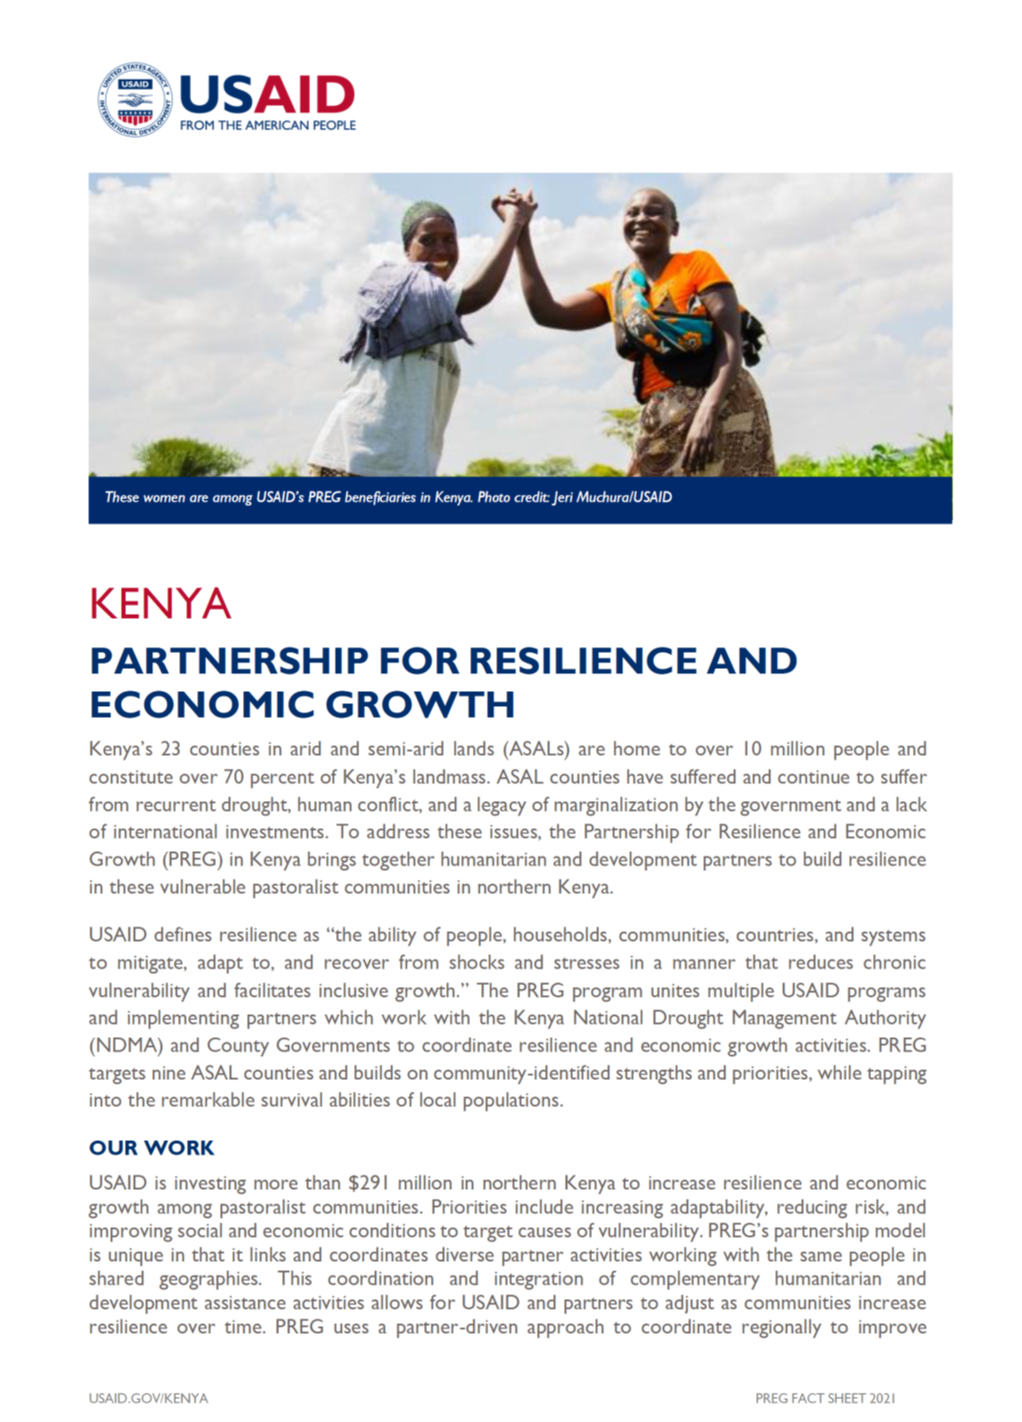 Partnership for Resilience and Economic Growth fact sheet